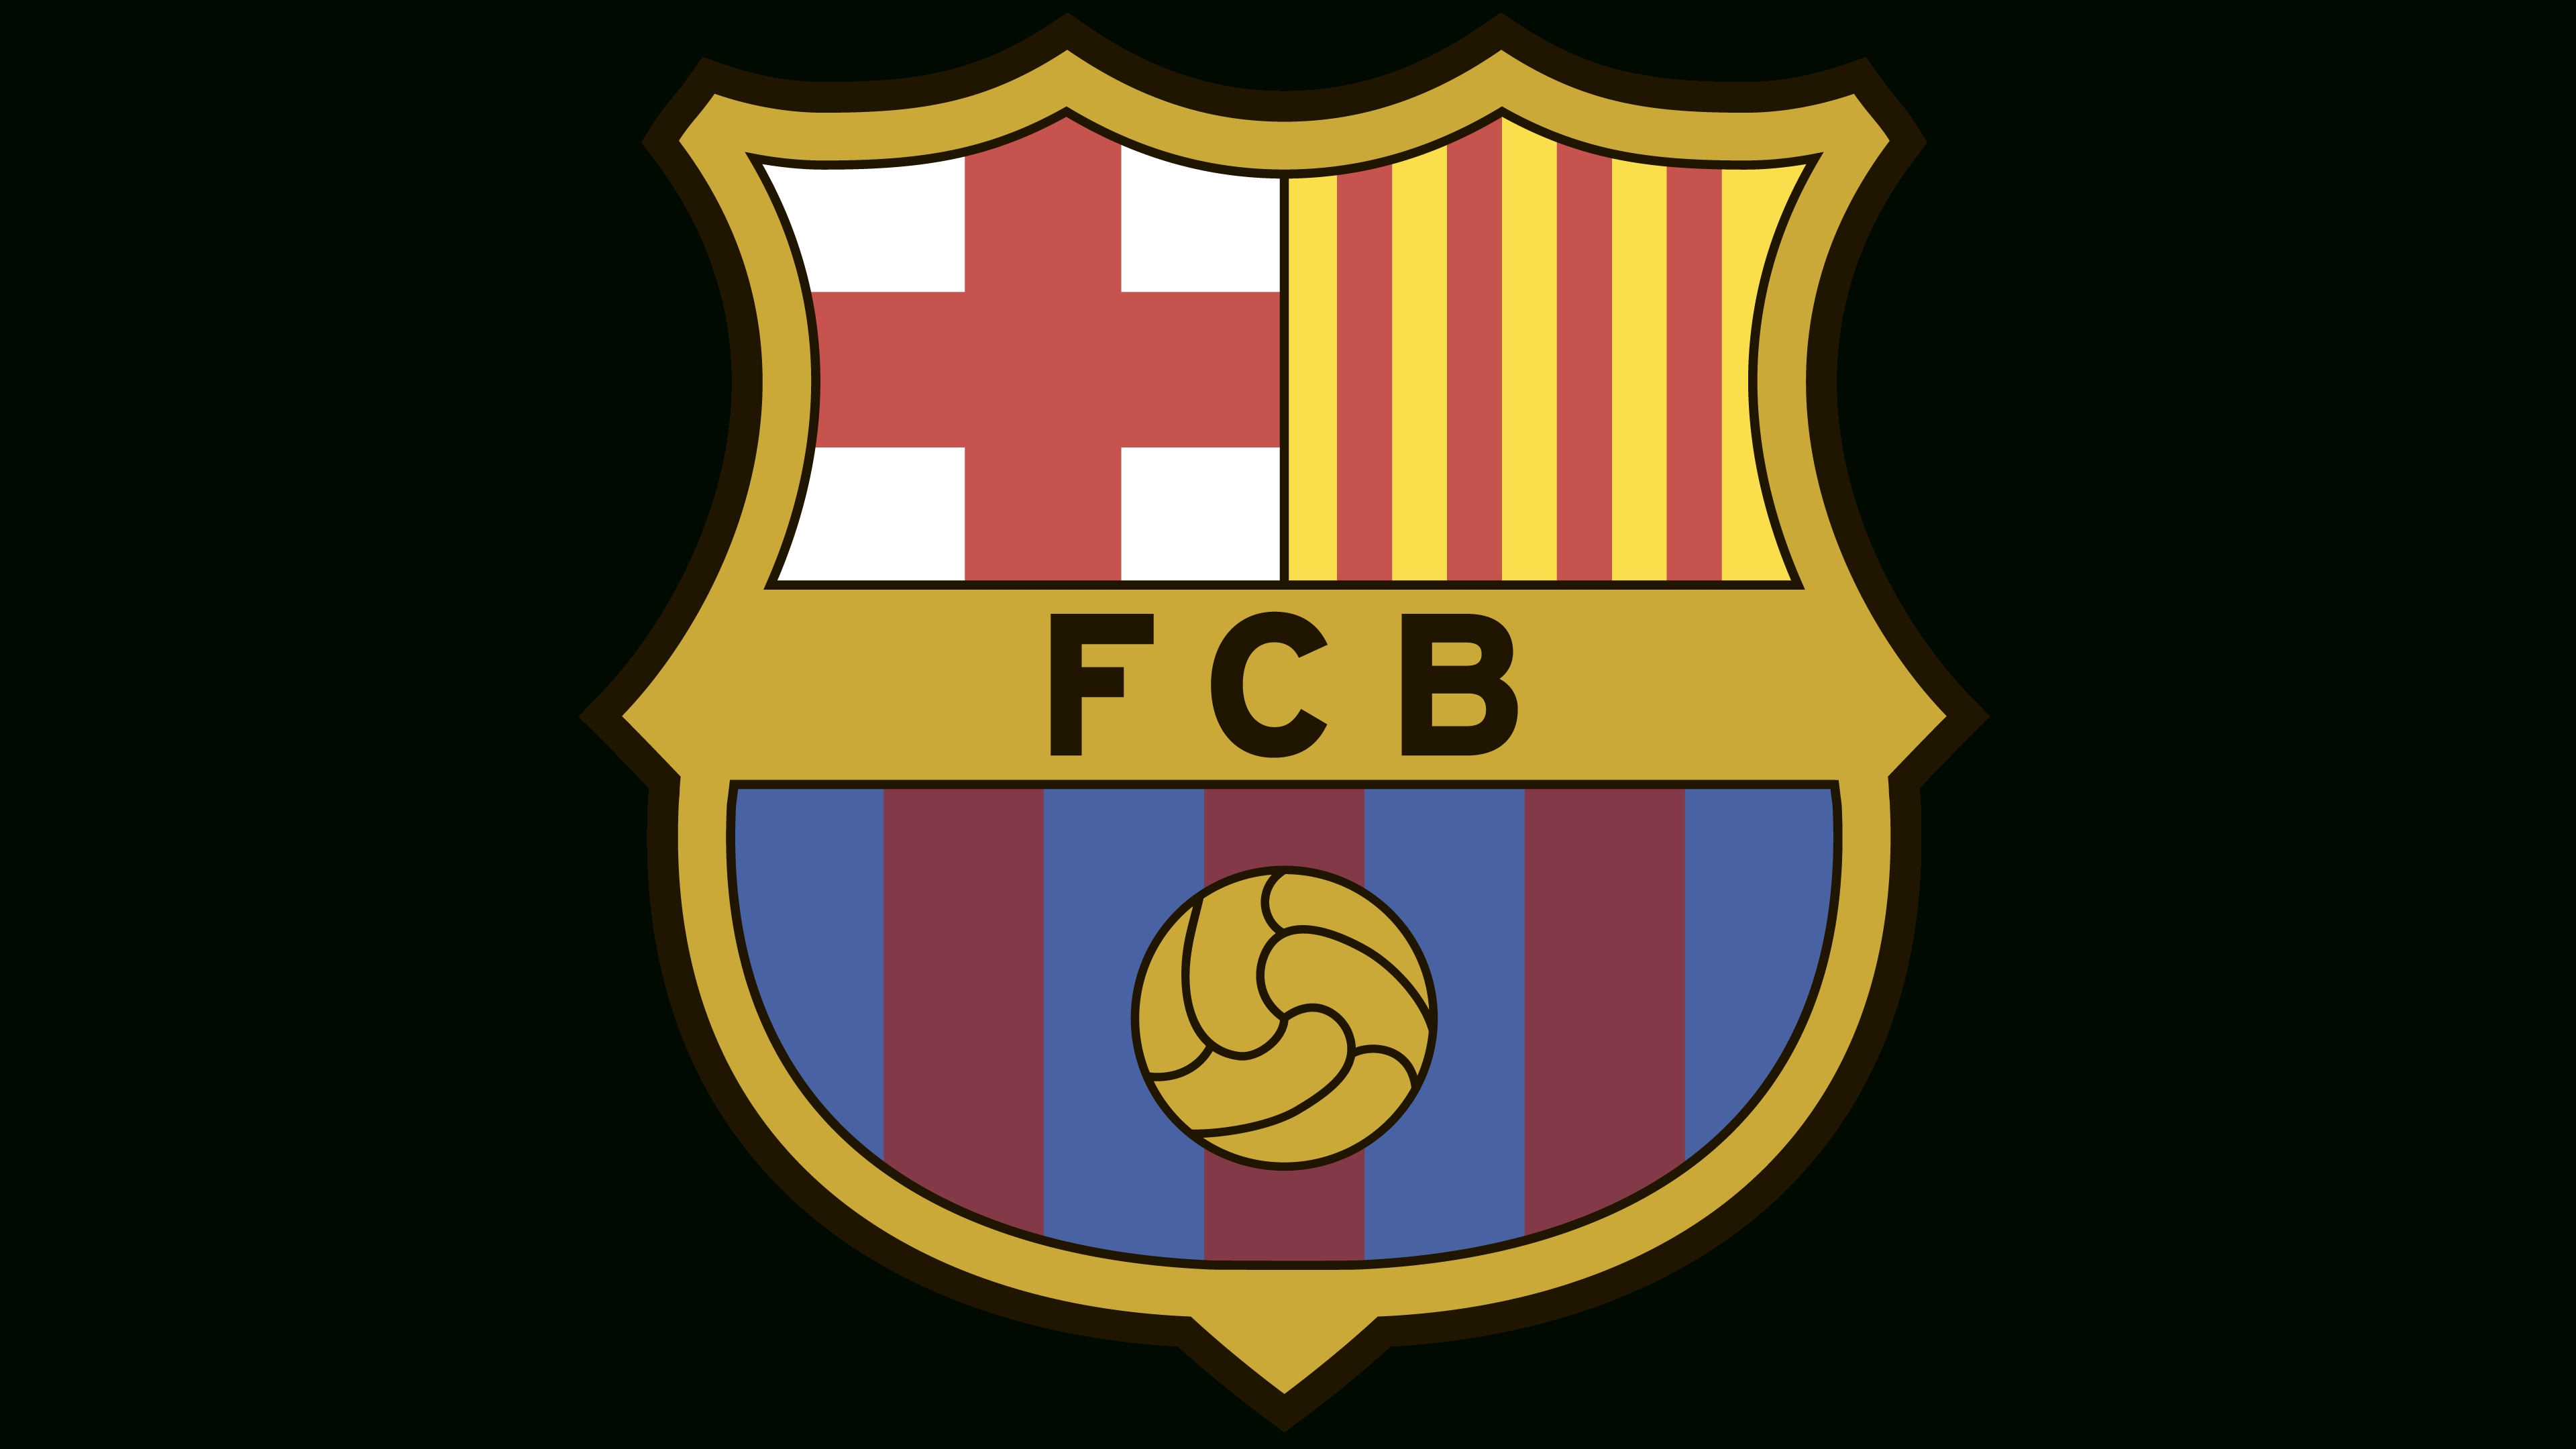 barcelona logo history, emblem, vector. meaning and origin logo